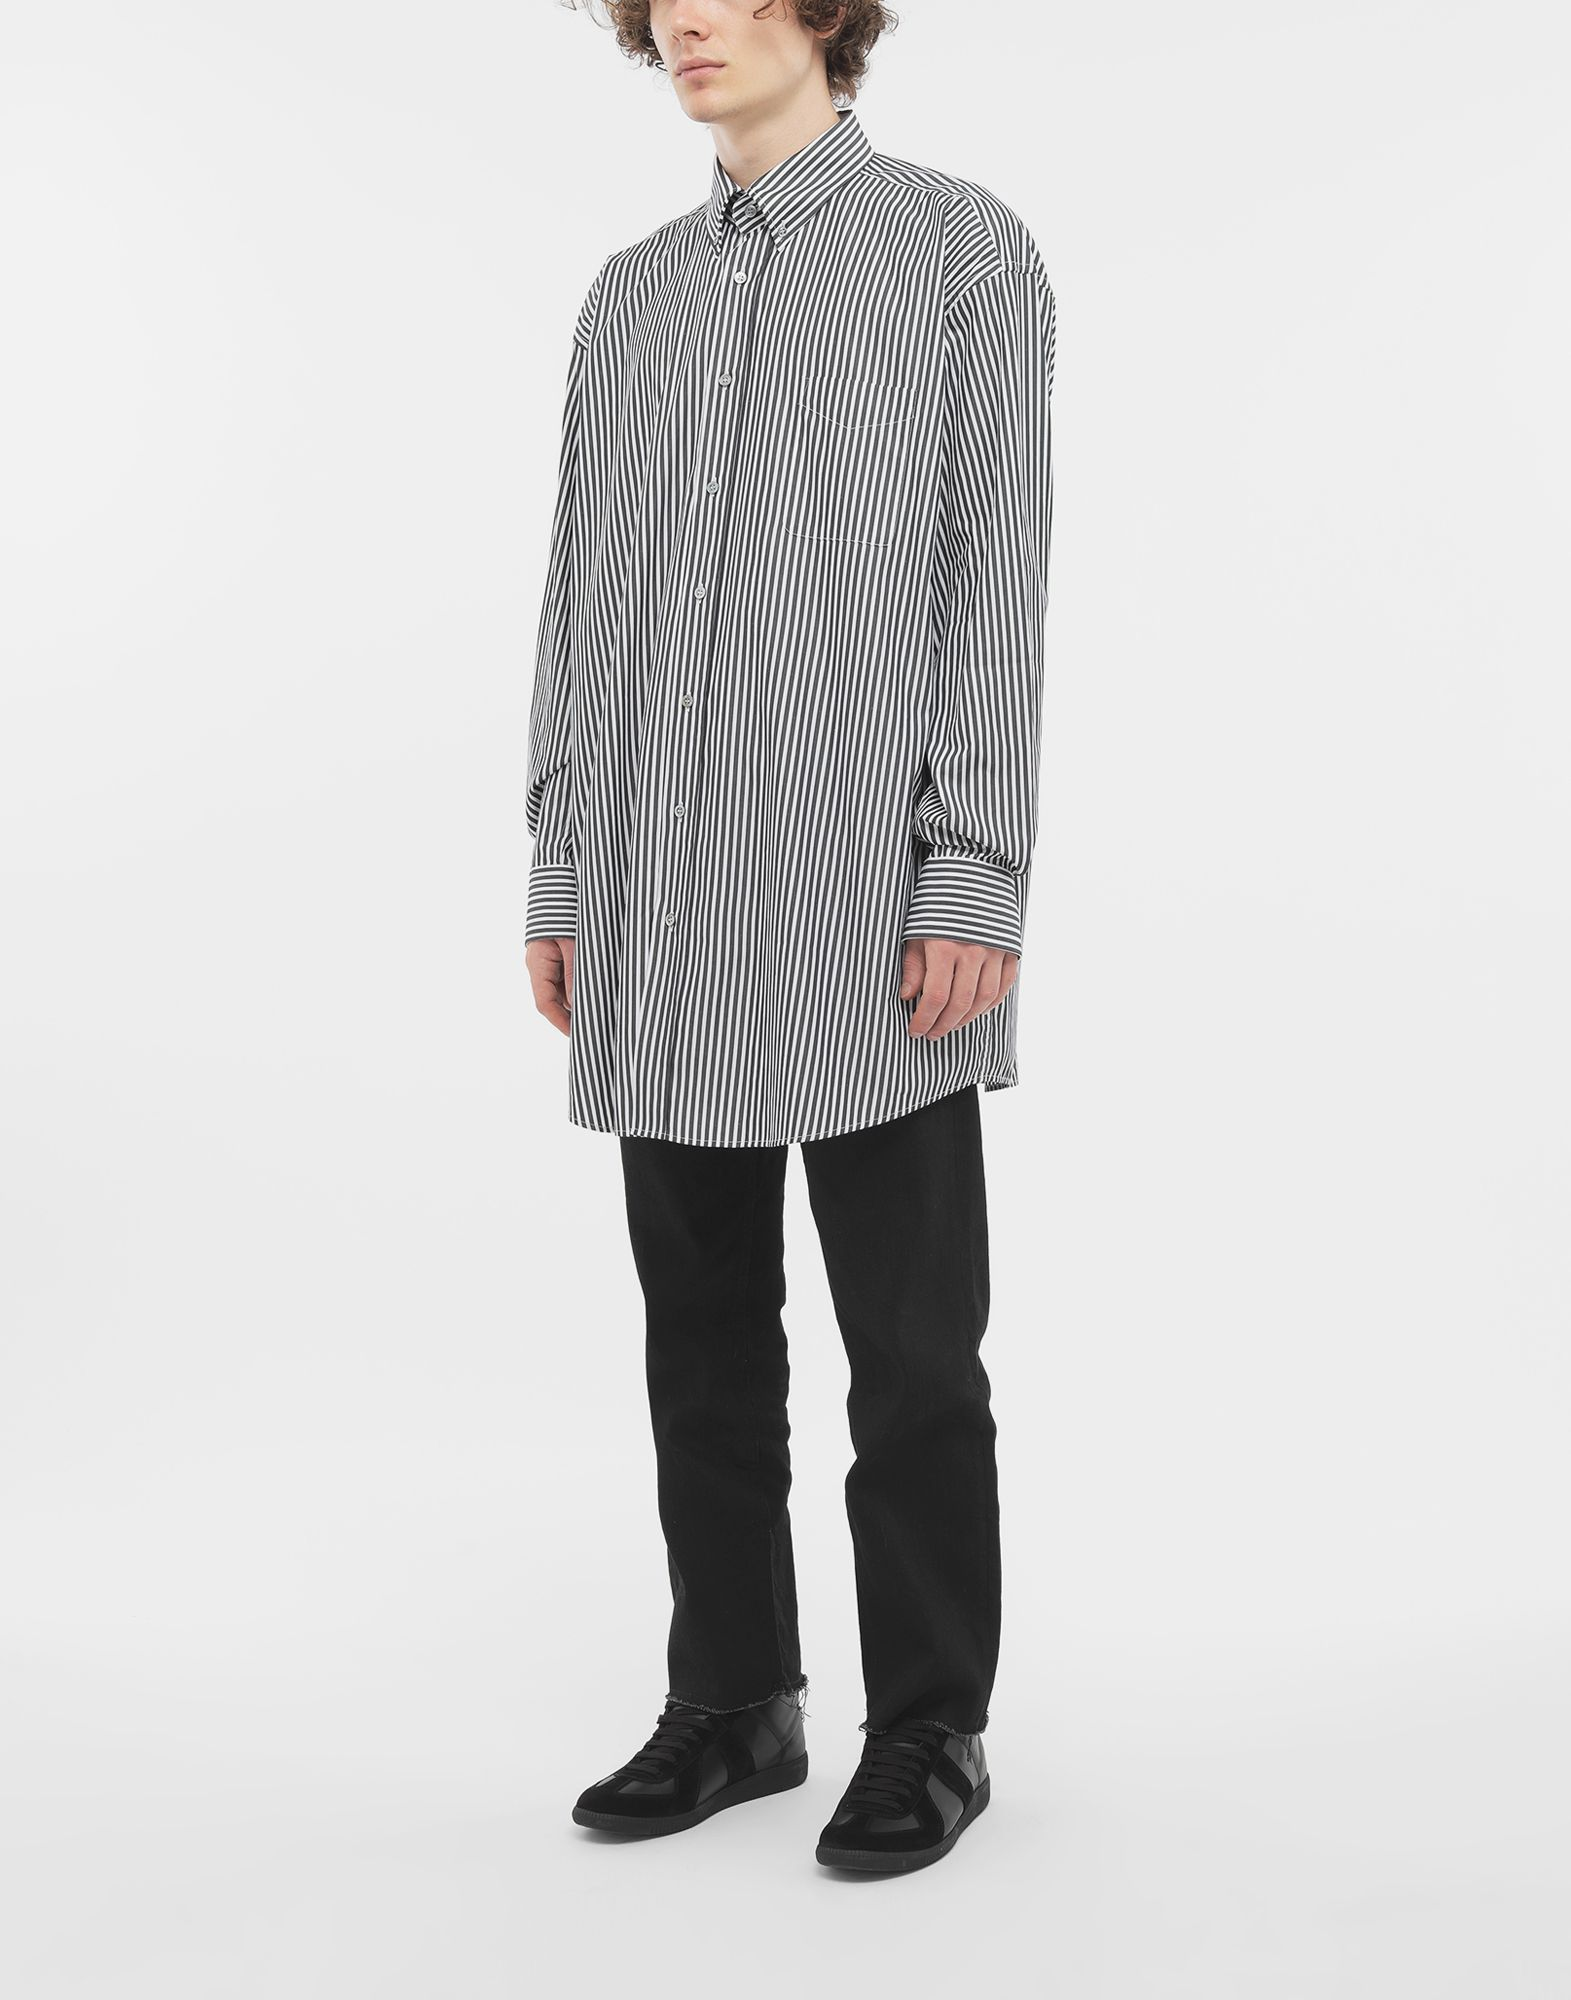 MAISON MARGIELA Striped shirt Long sleeve shirt Man d